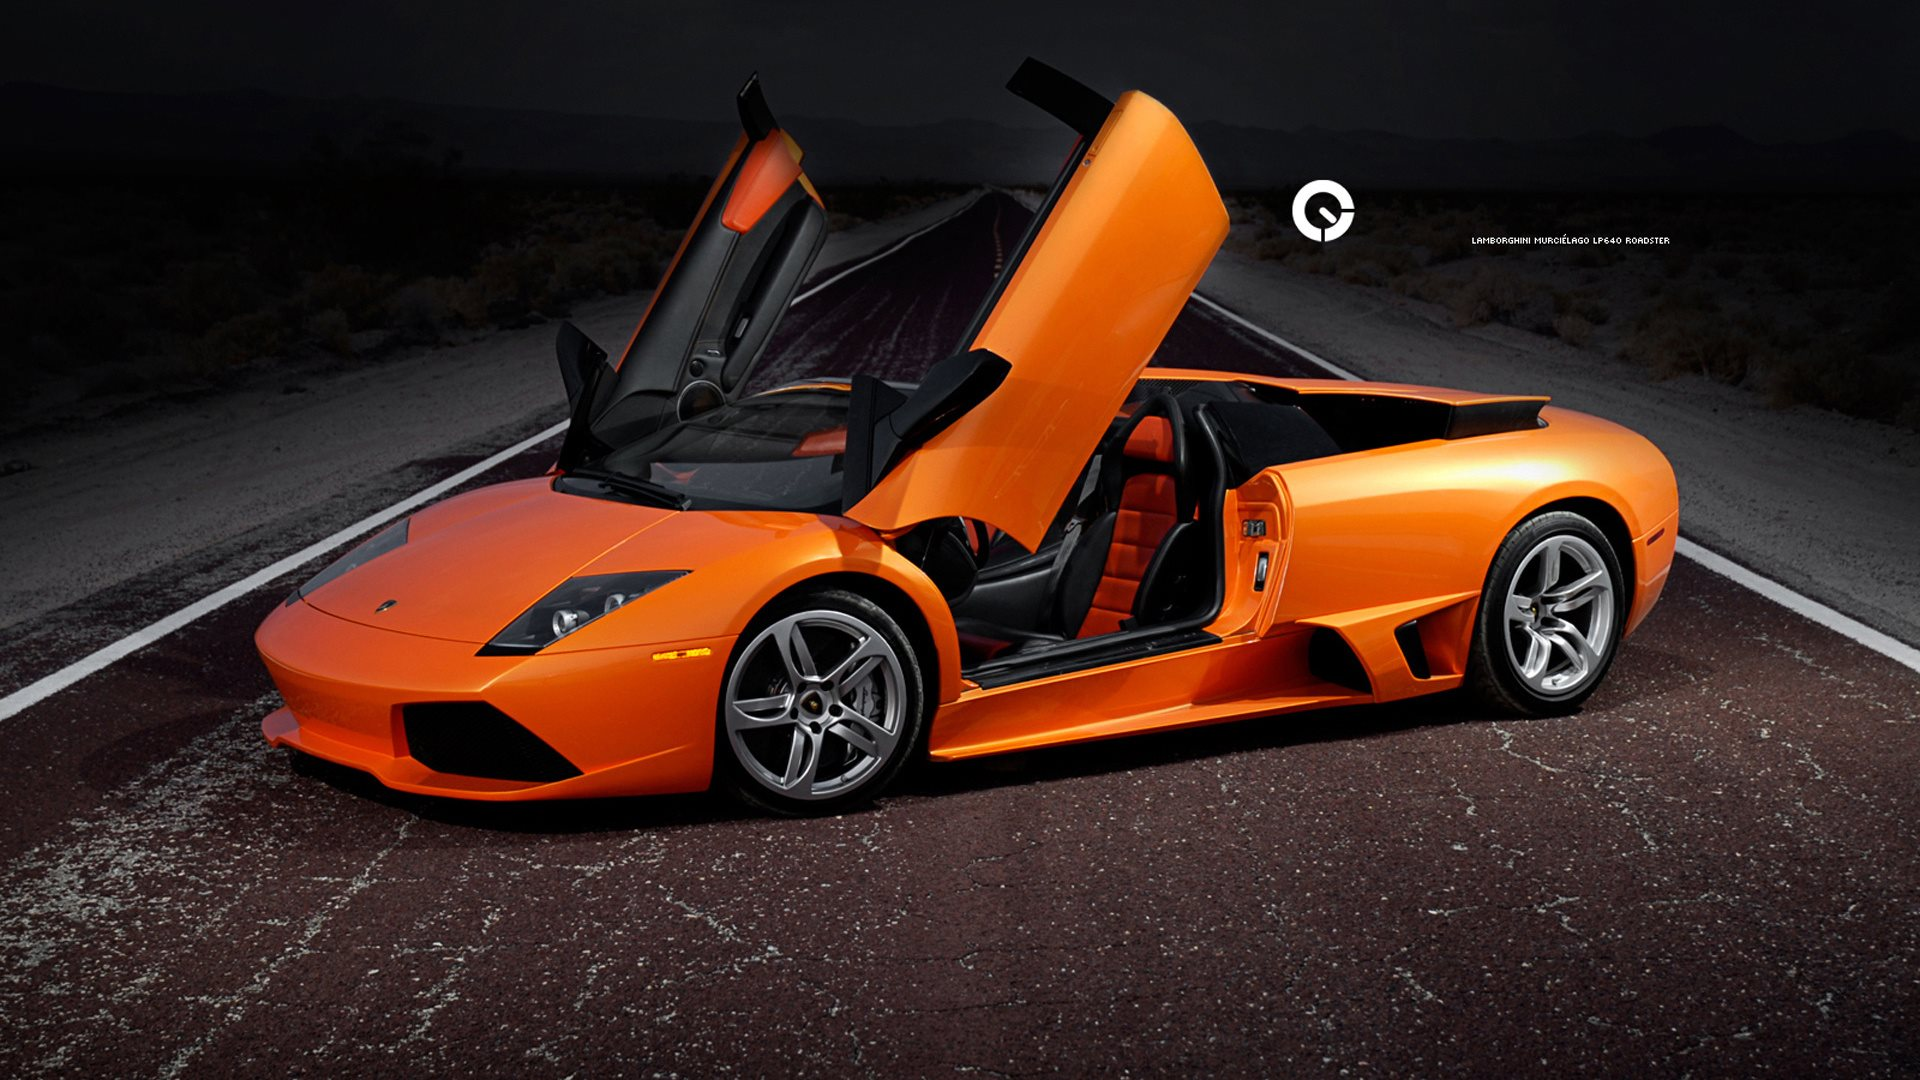 Good Wallpaper Night Lamborghini - Lamborghini-Murcielago-Night-Wallpaper-1920x1080  Graphic-3847.jpg